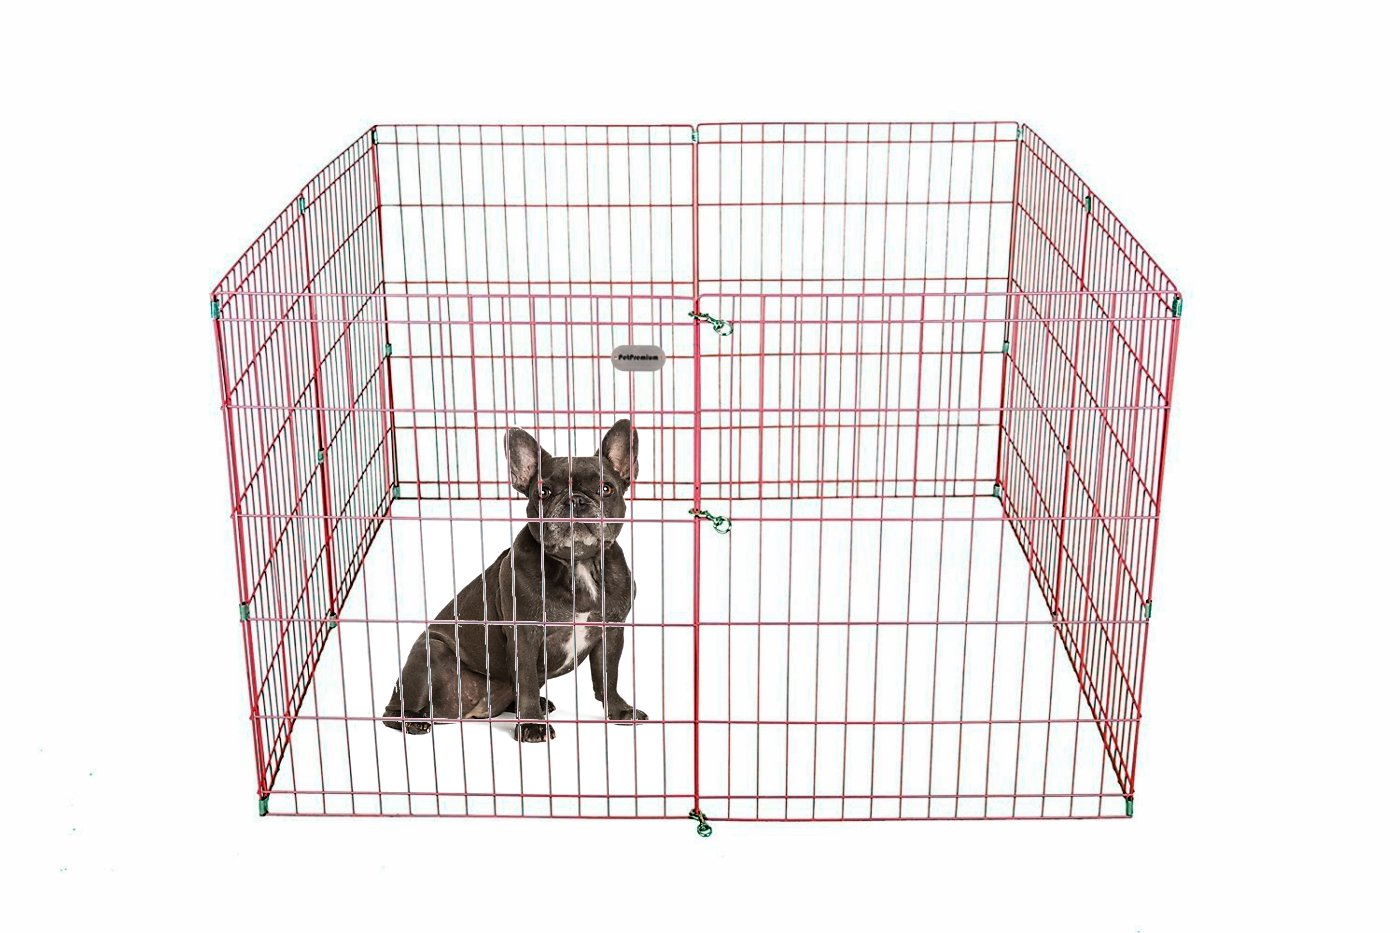 PetPremium Dog Puppy Playpen Pen | Indoor Outdoor Exercise Play Yard Outside | Pet Small Animal Puppies Portable Foldable Fence Enclosures | 30'' Height, 8 Panel Metal Wire, Pink